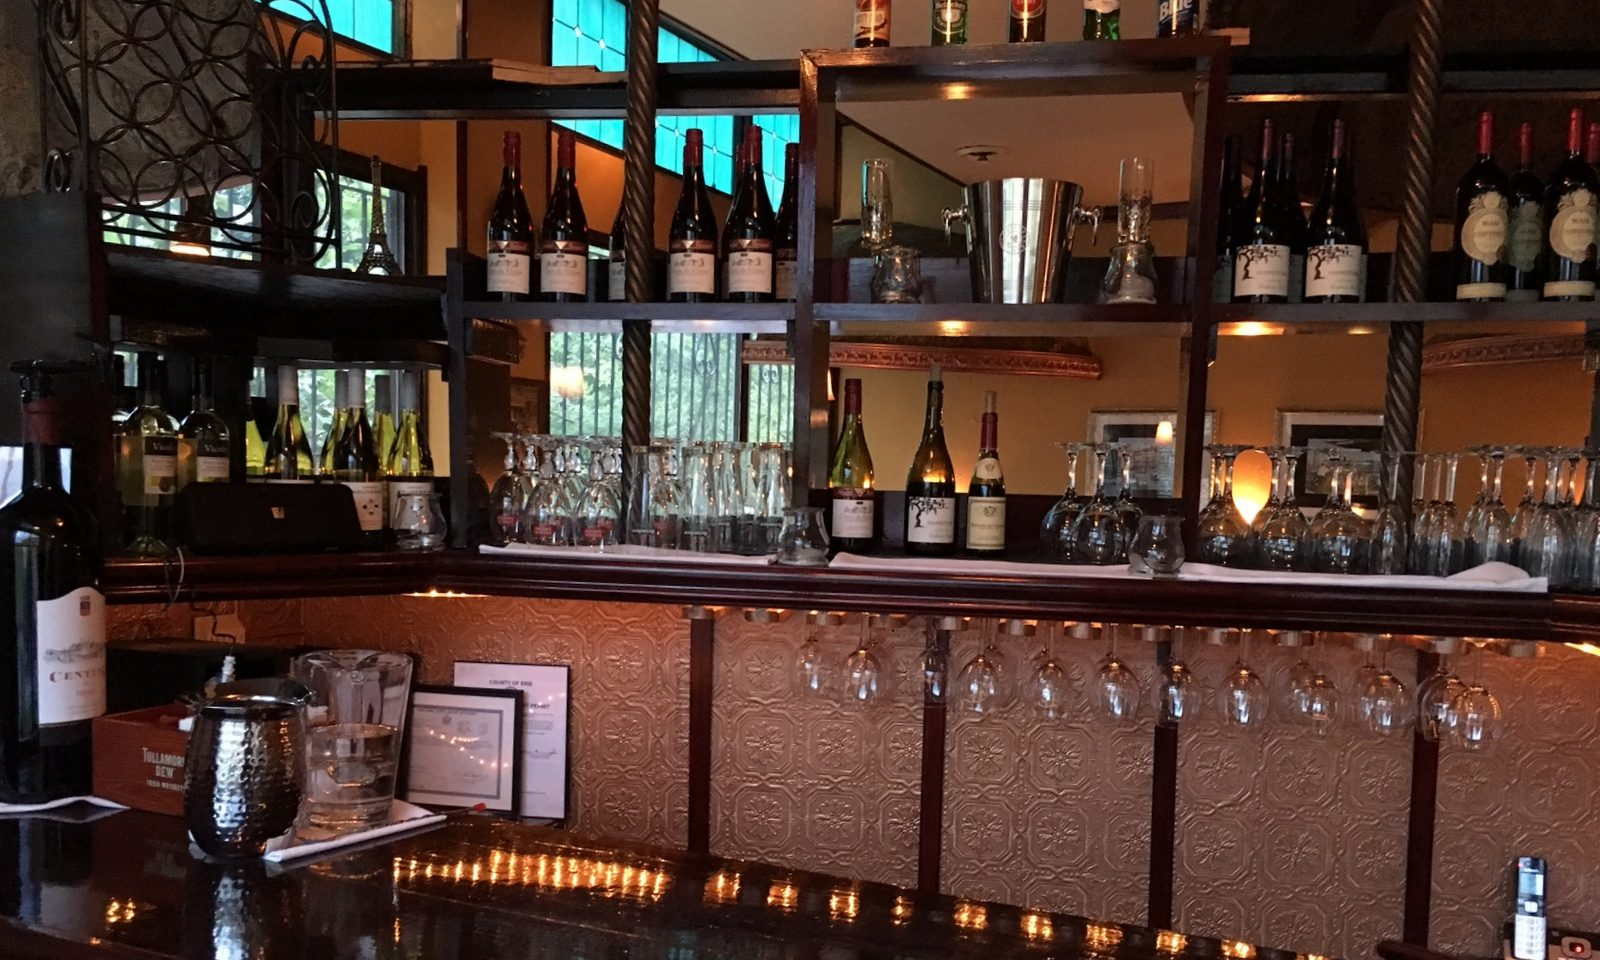 Bellini Bistro, open in the space that was formerly Prospero's and Coda, has a license for beer and wine. (Photo: Bellini's Bistro)